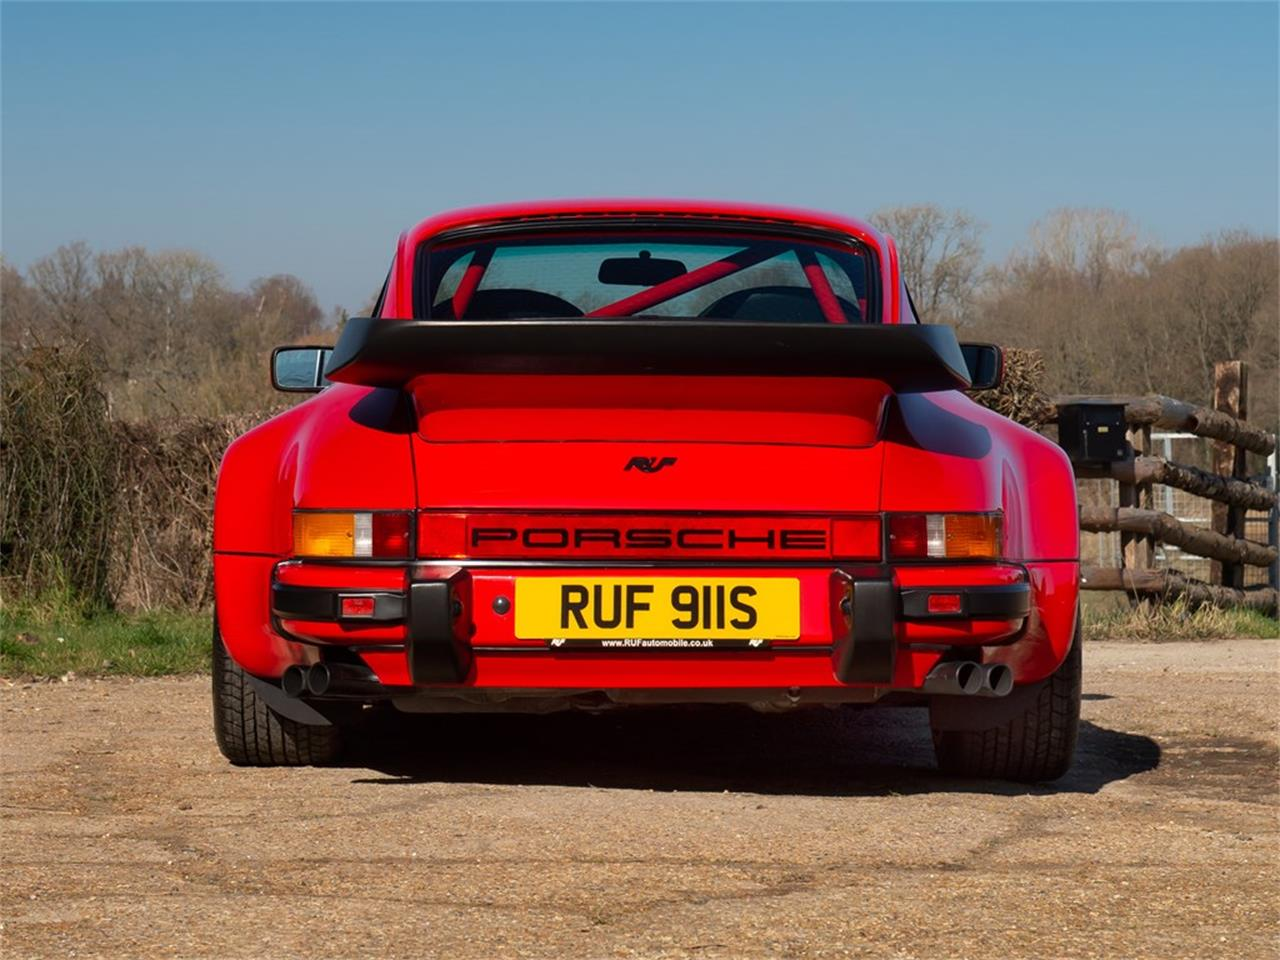 Large Picture of '86 Porsche RUF BTR located in Essen  Auction Vehicle Offered by RM Sotheby's - PO31